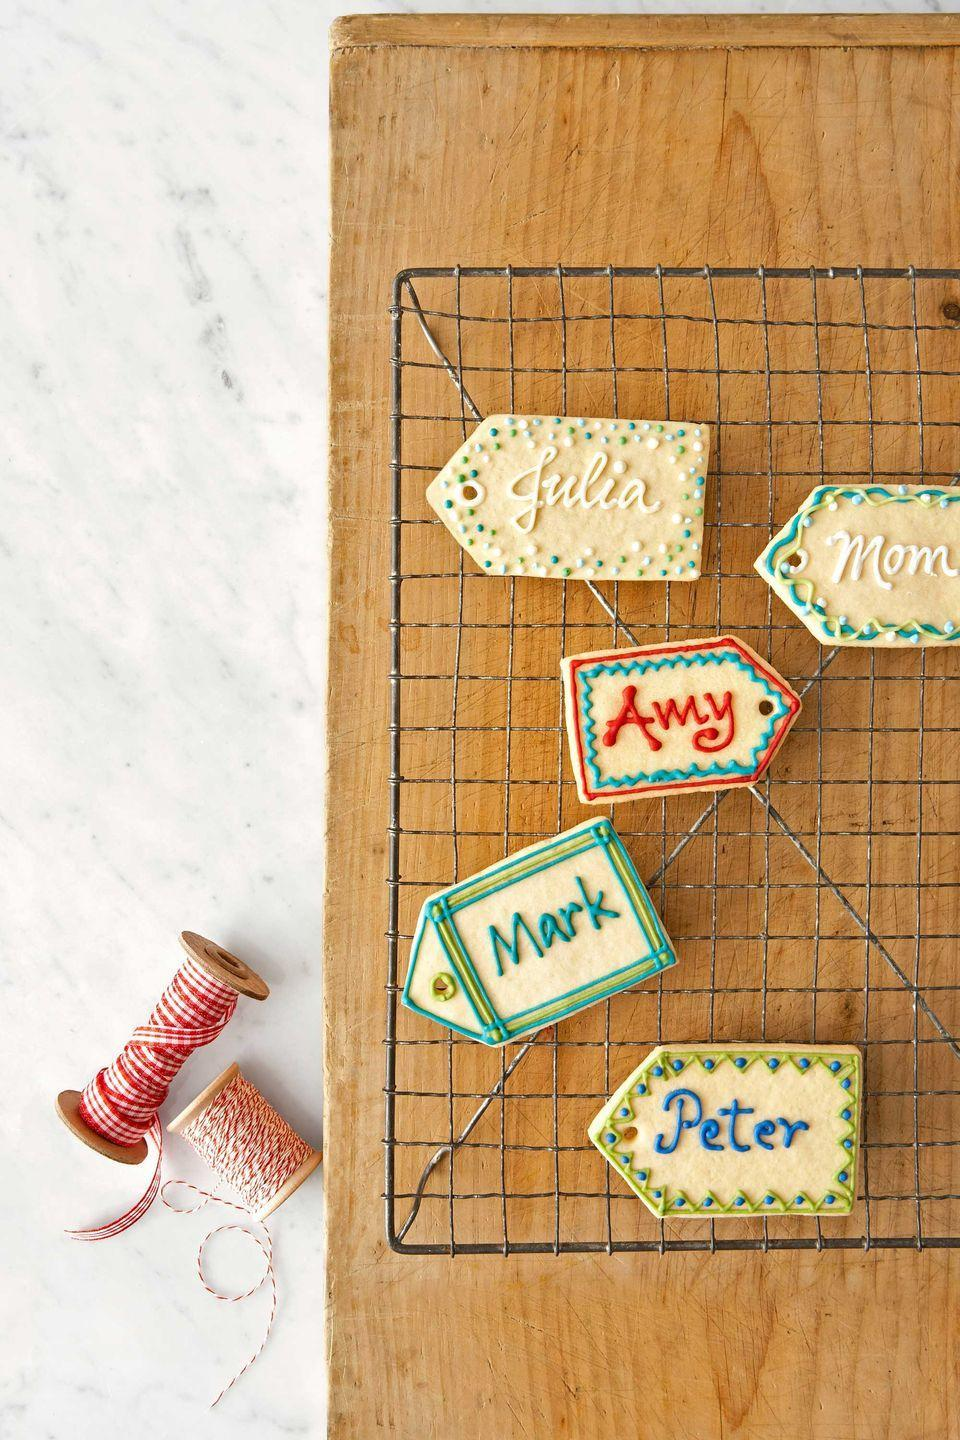 "<p>To create these sweet name tags, follow our recipe for sugar cookie dough. Form the cookies with a tag-shaped cutter, then use a plastic straw to punch a hole in the pointed end of each treat before baking.</p><p><a href=""https://www.countryliving.com/food-drinks/recipes/a3270/sugar-cookies-recipe/"" rel=""nofollow noopener"" target=""_blank"" data-ylk=""slk:Get the recipe."" class=""link rapid-noclick-resp""><strong>Get the recipe.</strong></a></p>"